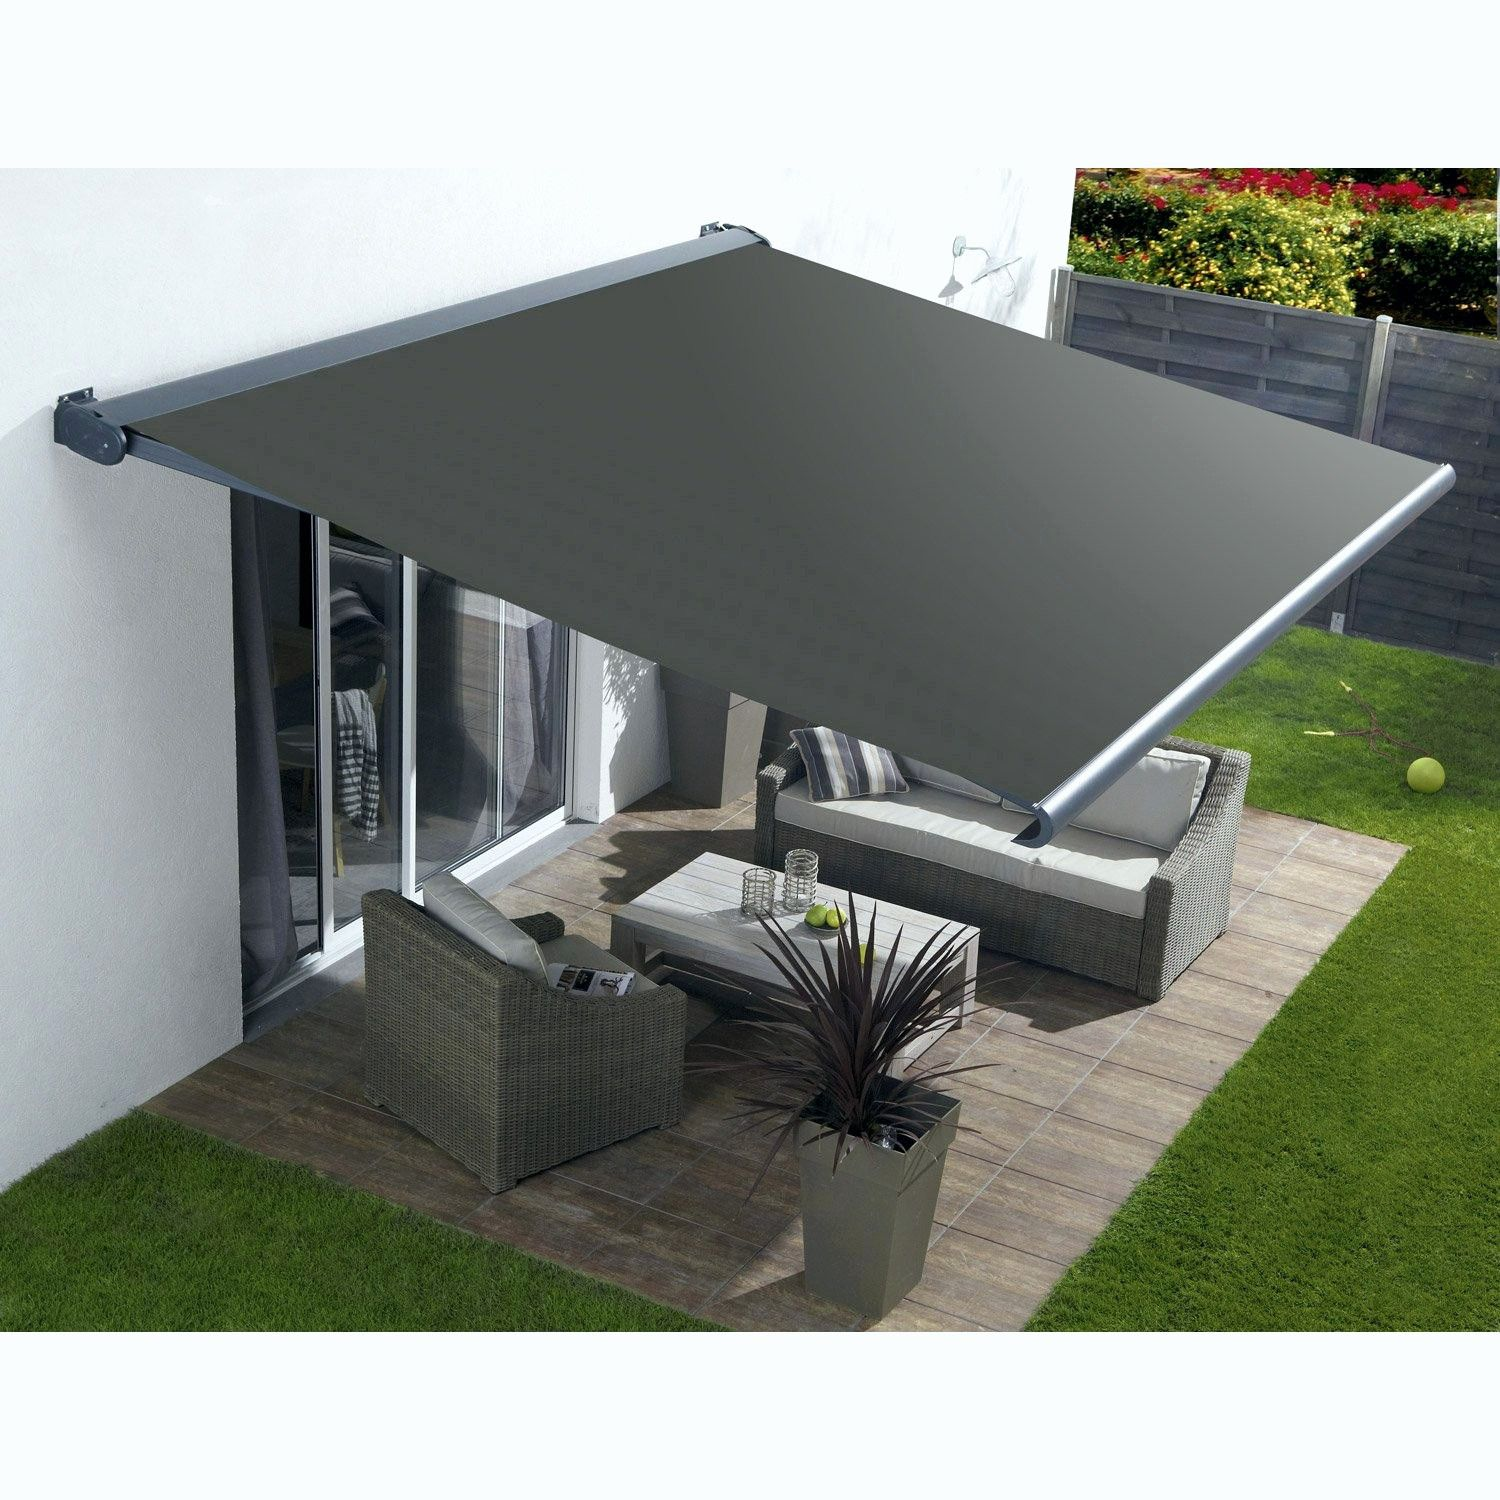 Best Of Grille De Defense Fenetre Brico Depot Backyard Patio Designs Patio Shade Outdoor Awnings